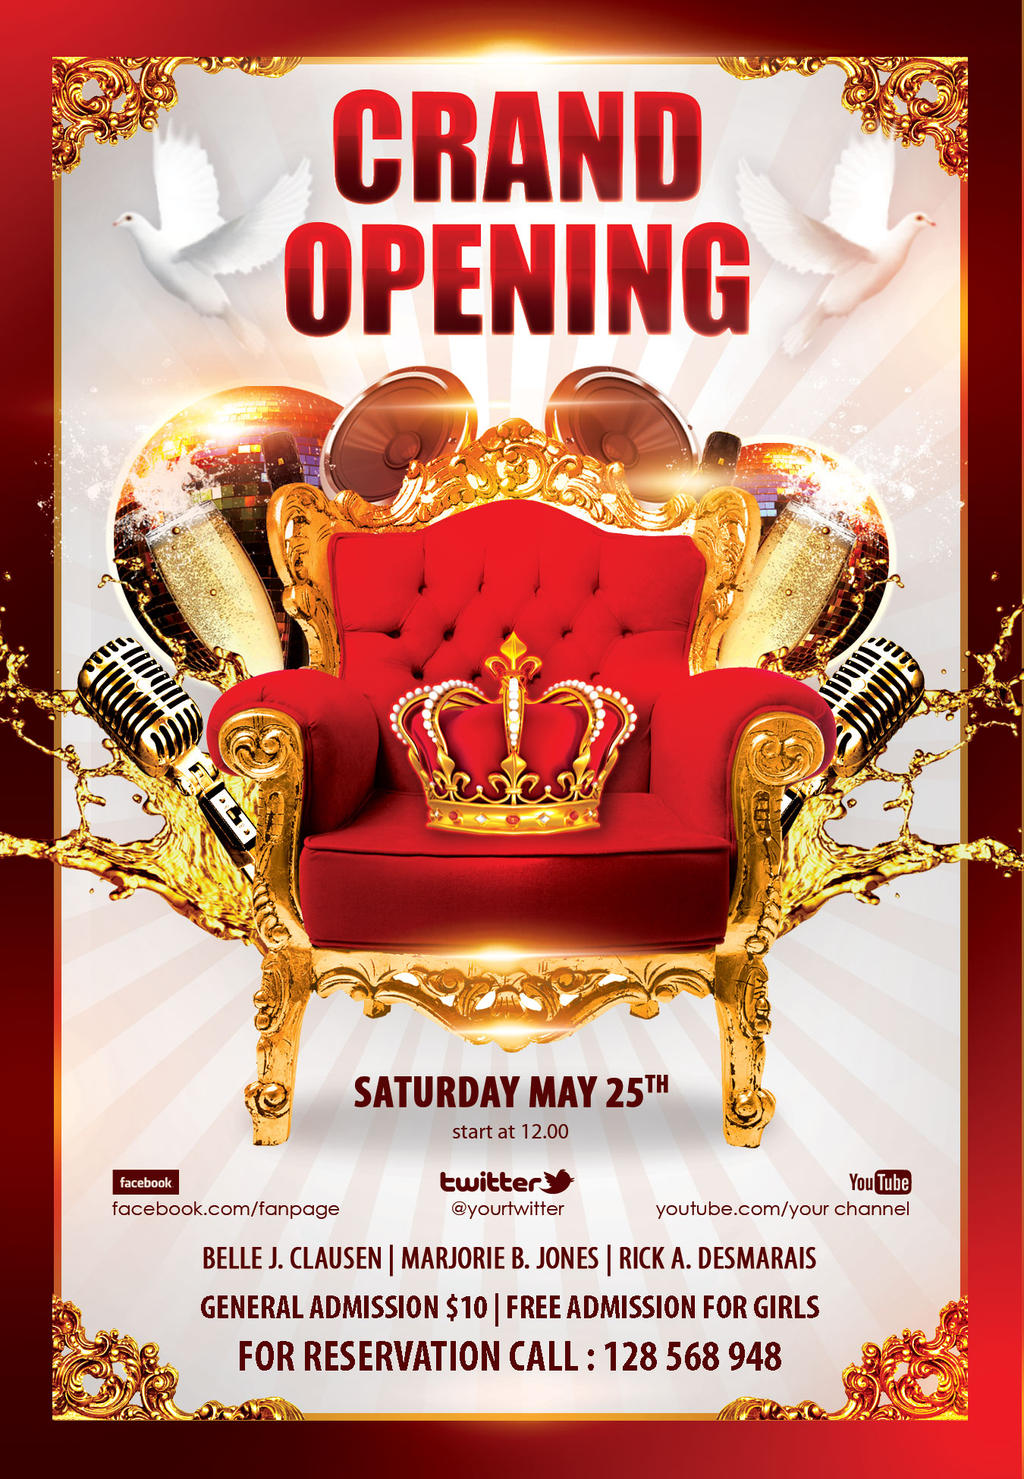 grand opening party flyer by styleflyers on deviantart. Black Bedroom Furniture Sets. Home Design Ideas